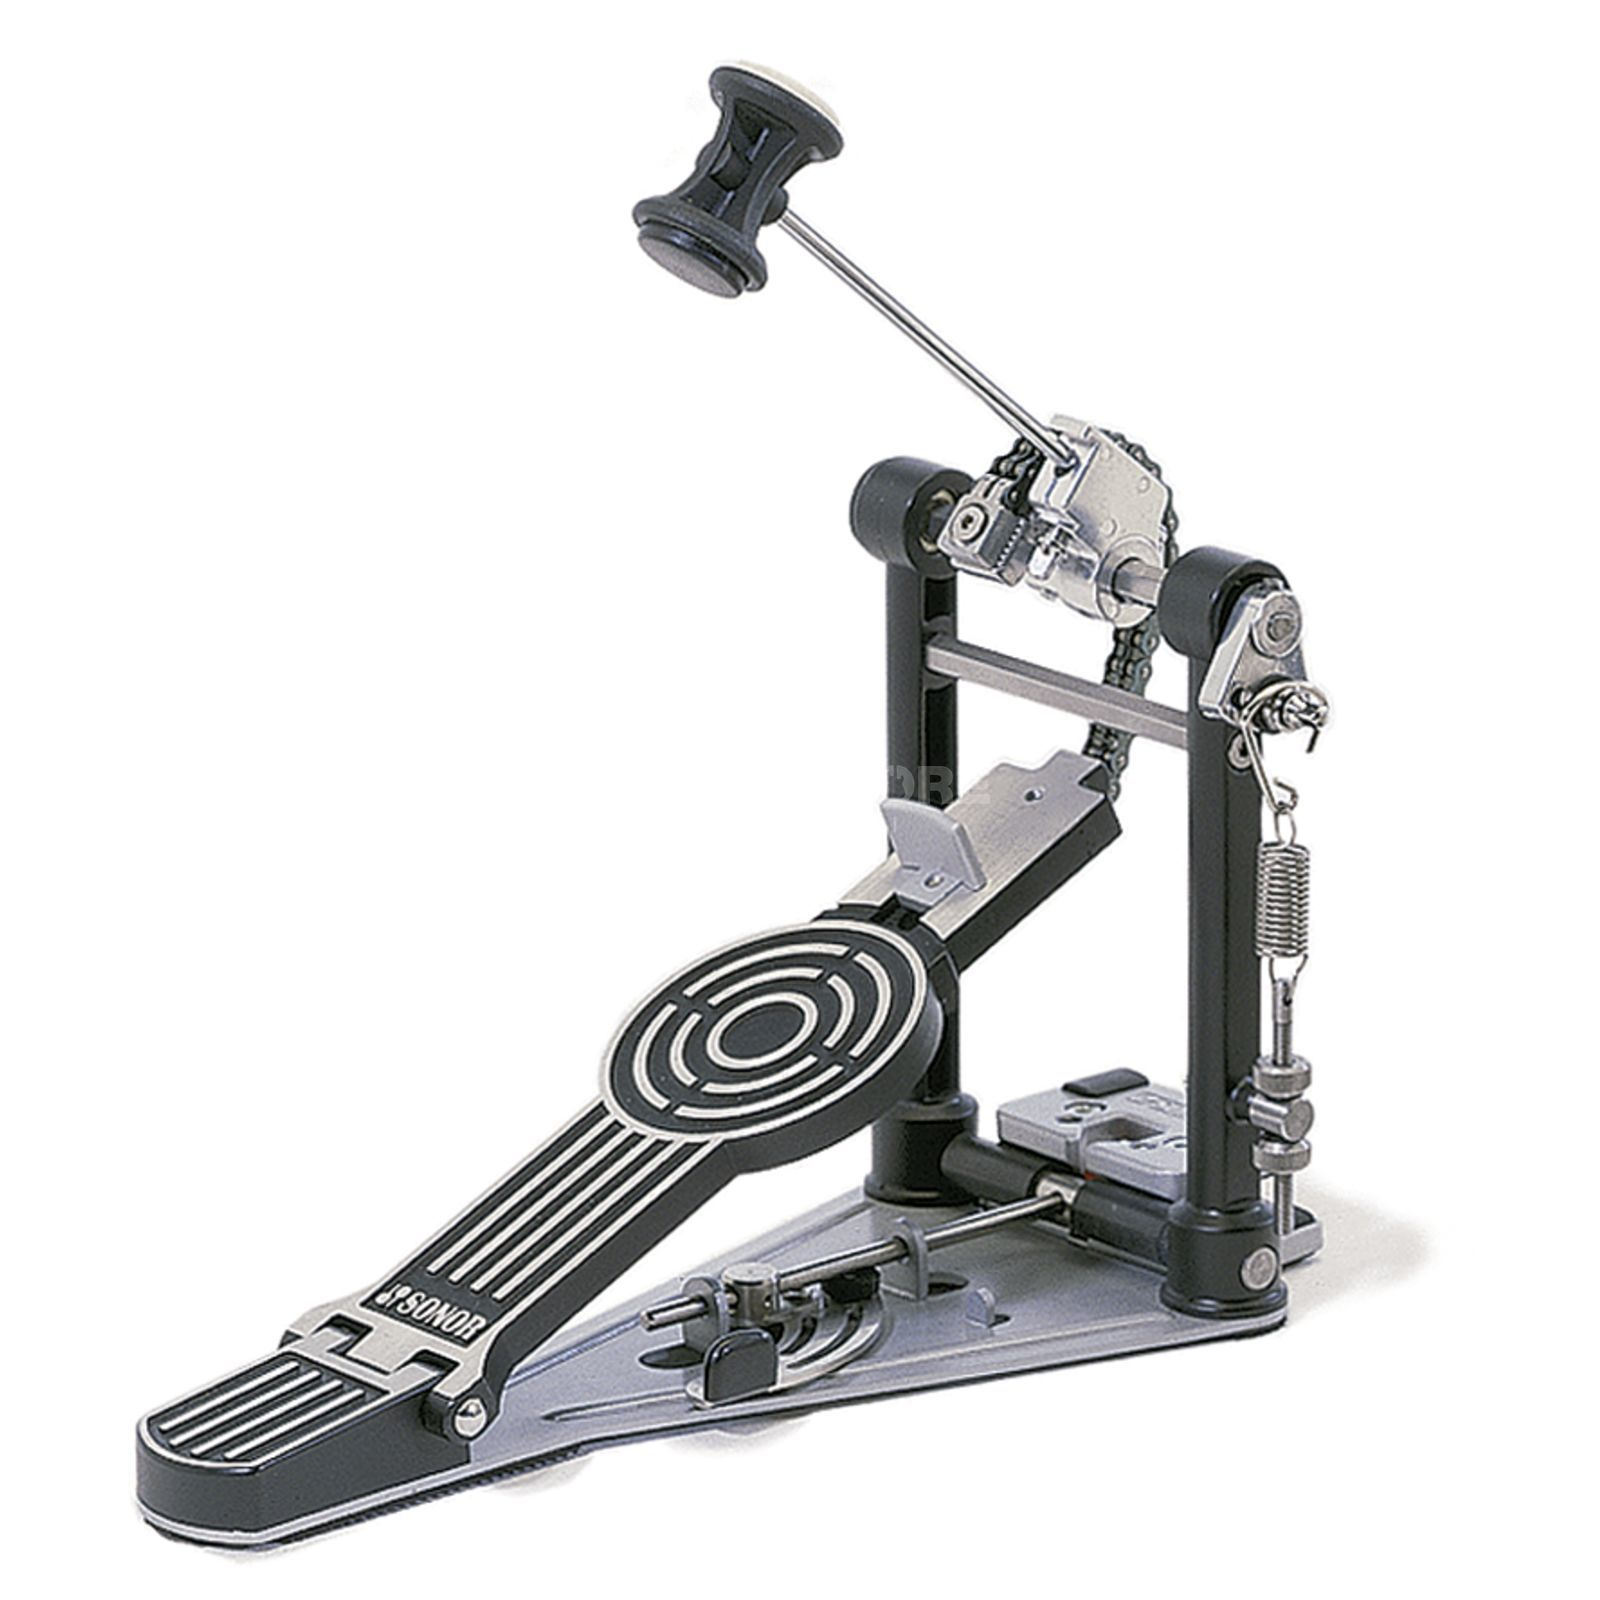 Sonor SP673 Kick Pedal, incl. bag Produktbillede